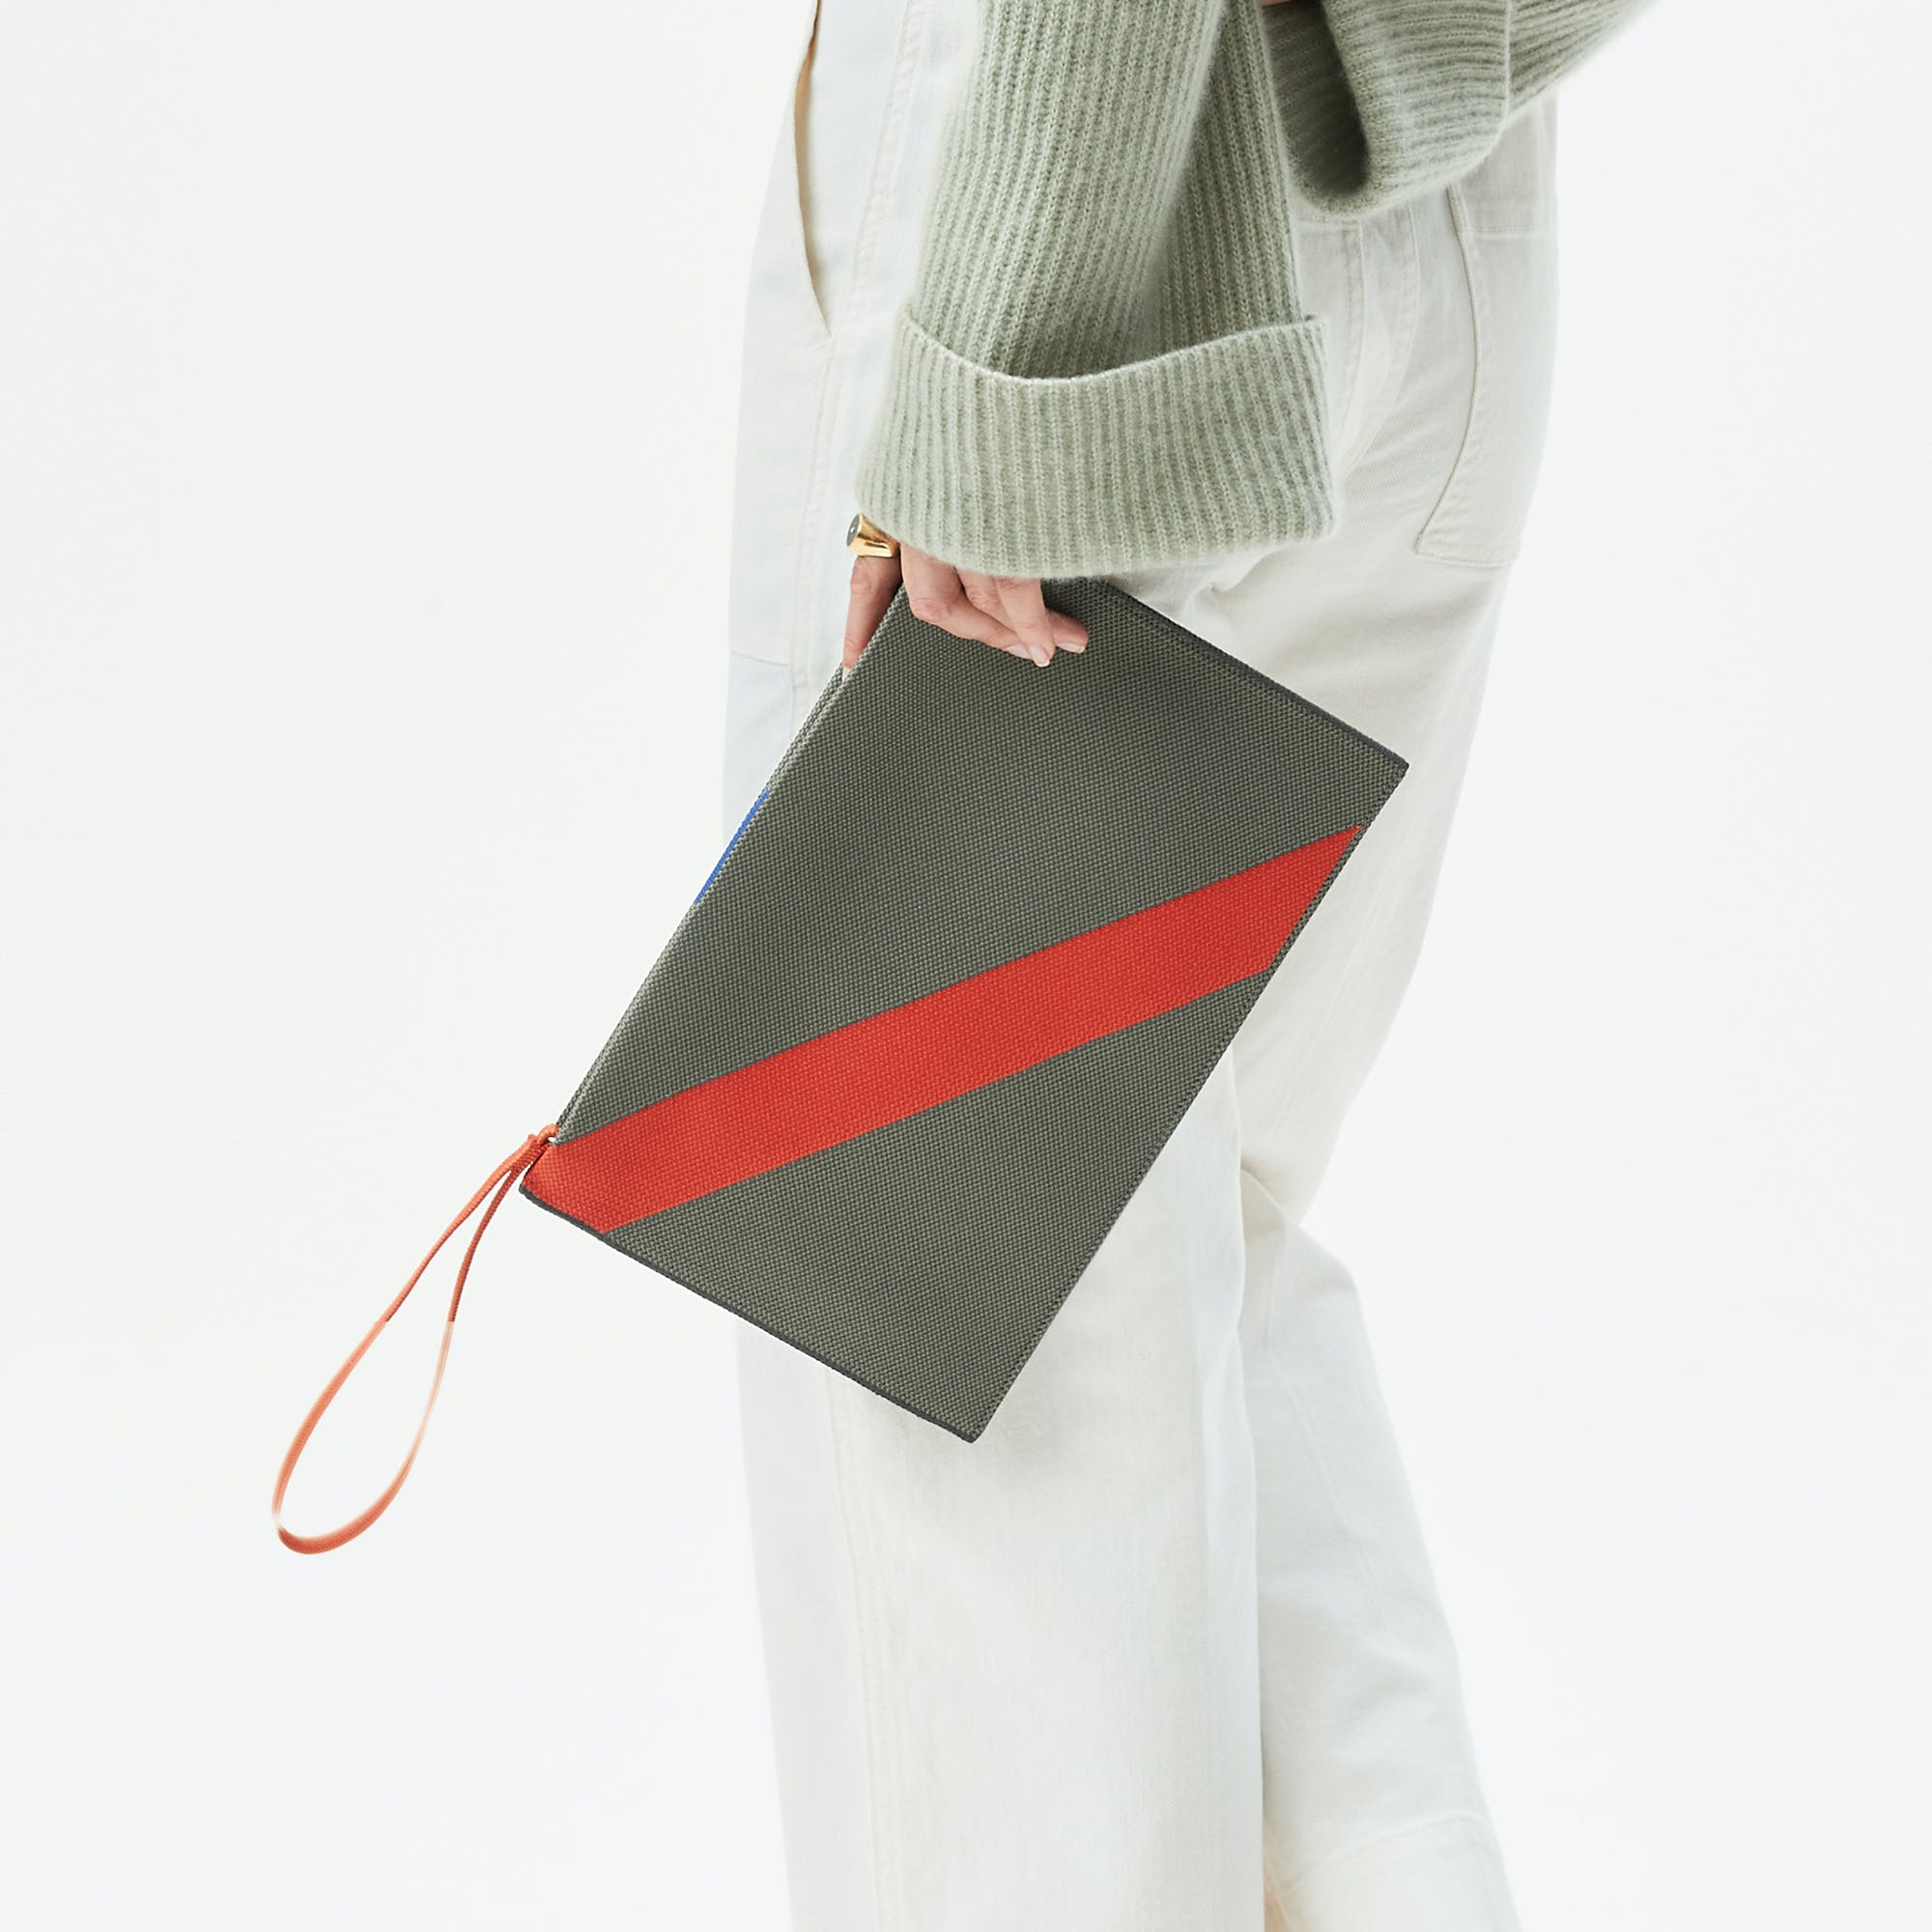 The Essential Pouch in Sage Green shown from the front.